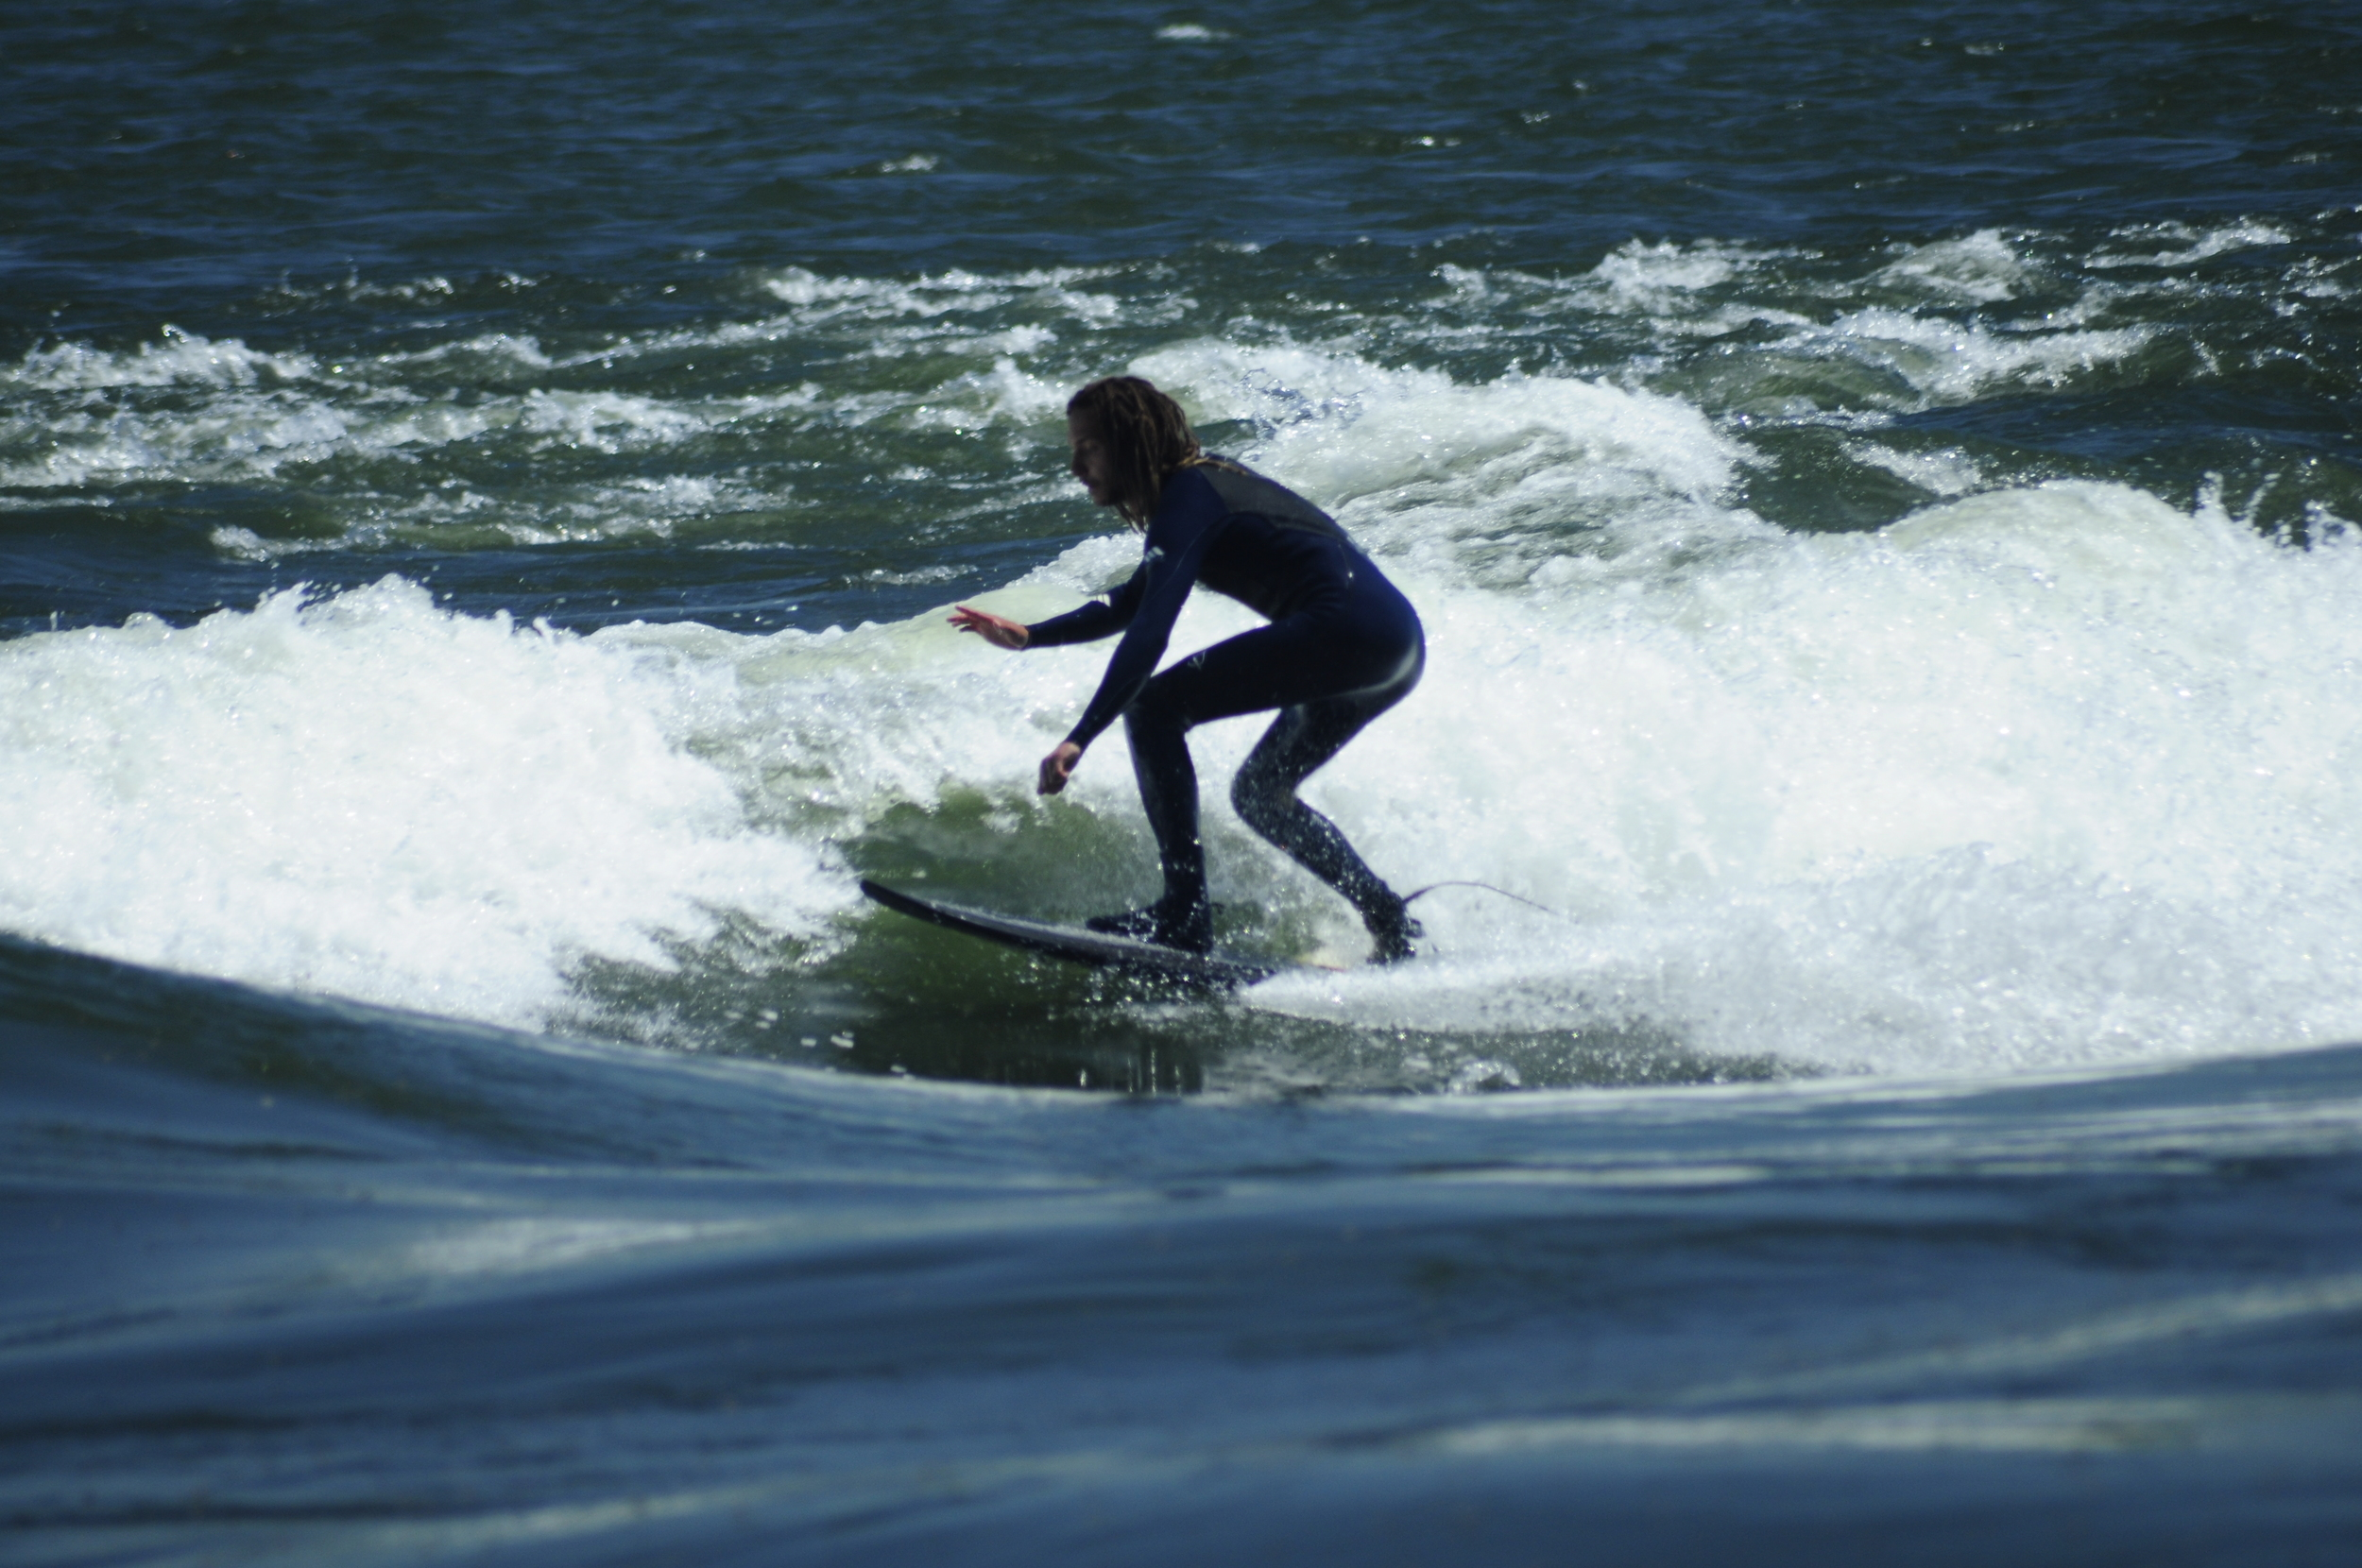 A popular surfing spot in downtown Montreal will be surrounded by sewage release spots if the city goes ahead with its plan to dump 8-billion litres of raw sewage into the river this month. Photo courtesy  Pedro fait de la Photo via Flickr.